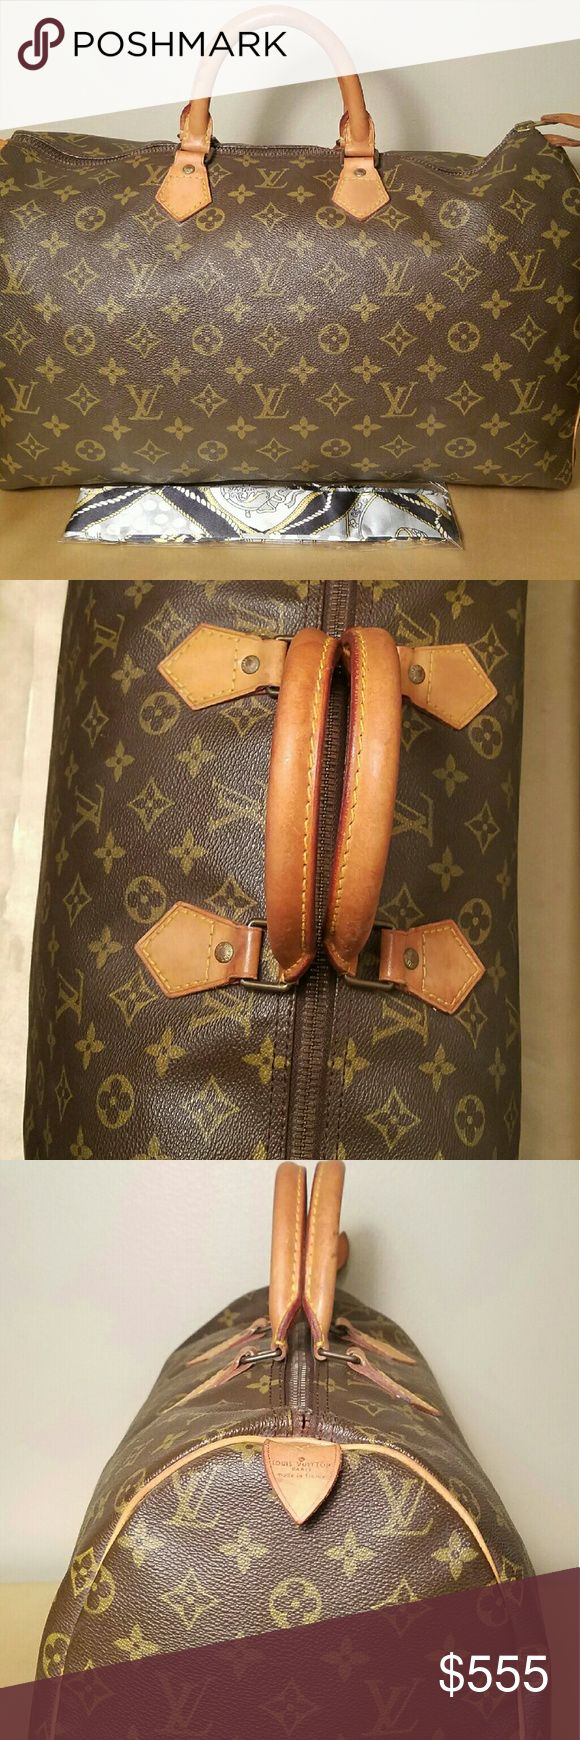 Authentic Louis Vuitton Speedy 40 In great condition. Has no rips tears or stains. Better price elsewhere Louis Vuitton Bags Satchels